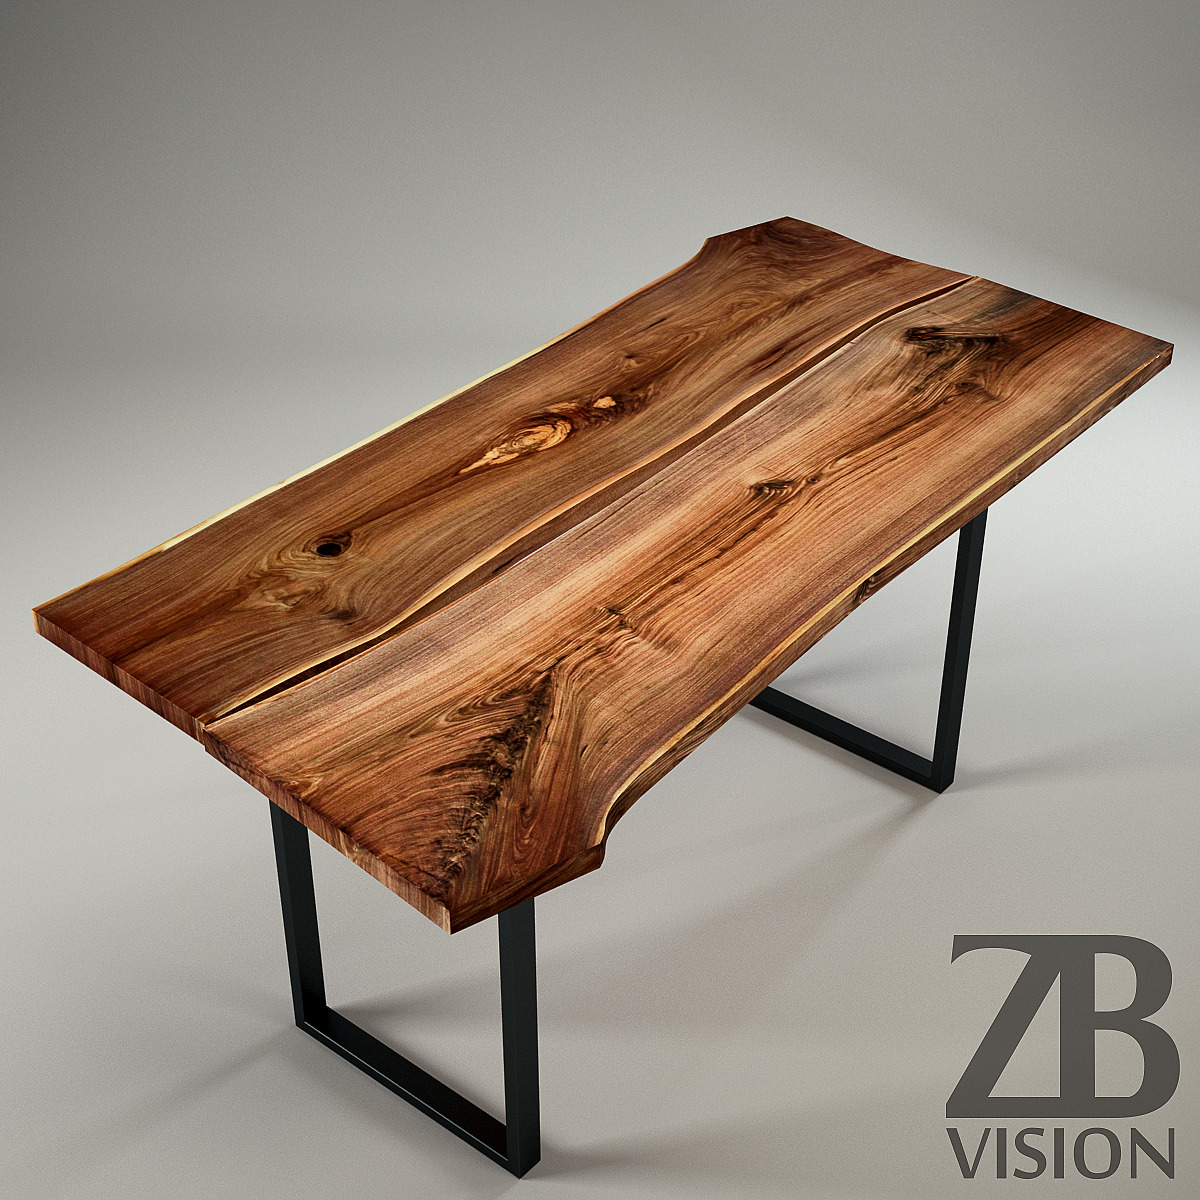 Wood Slab Table By Ign Design Switzerland By Luckyfox